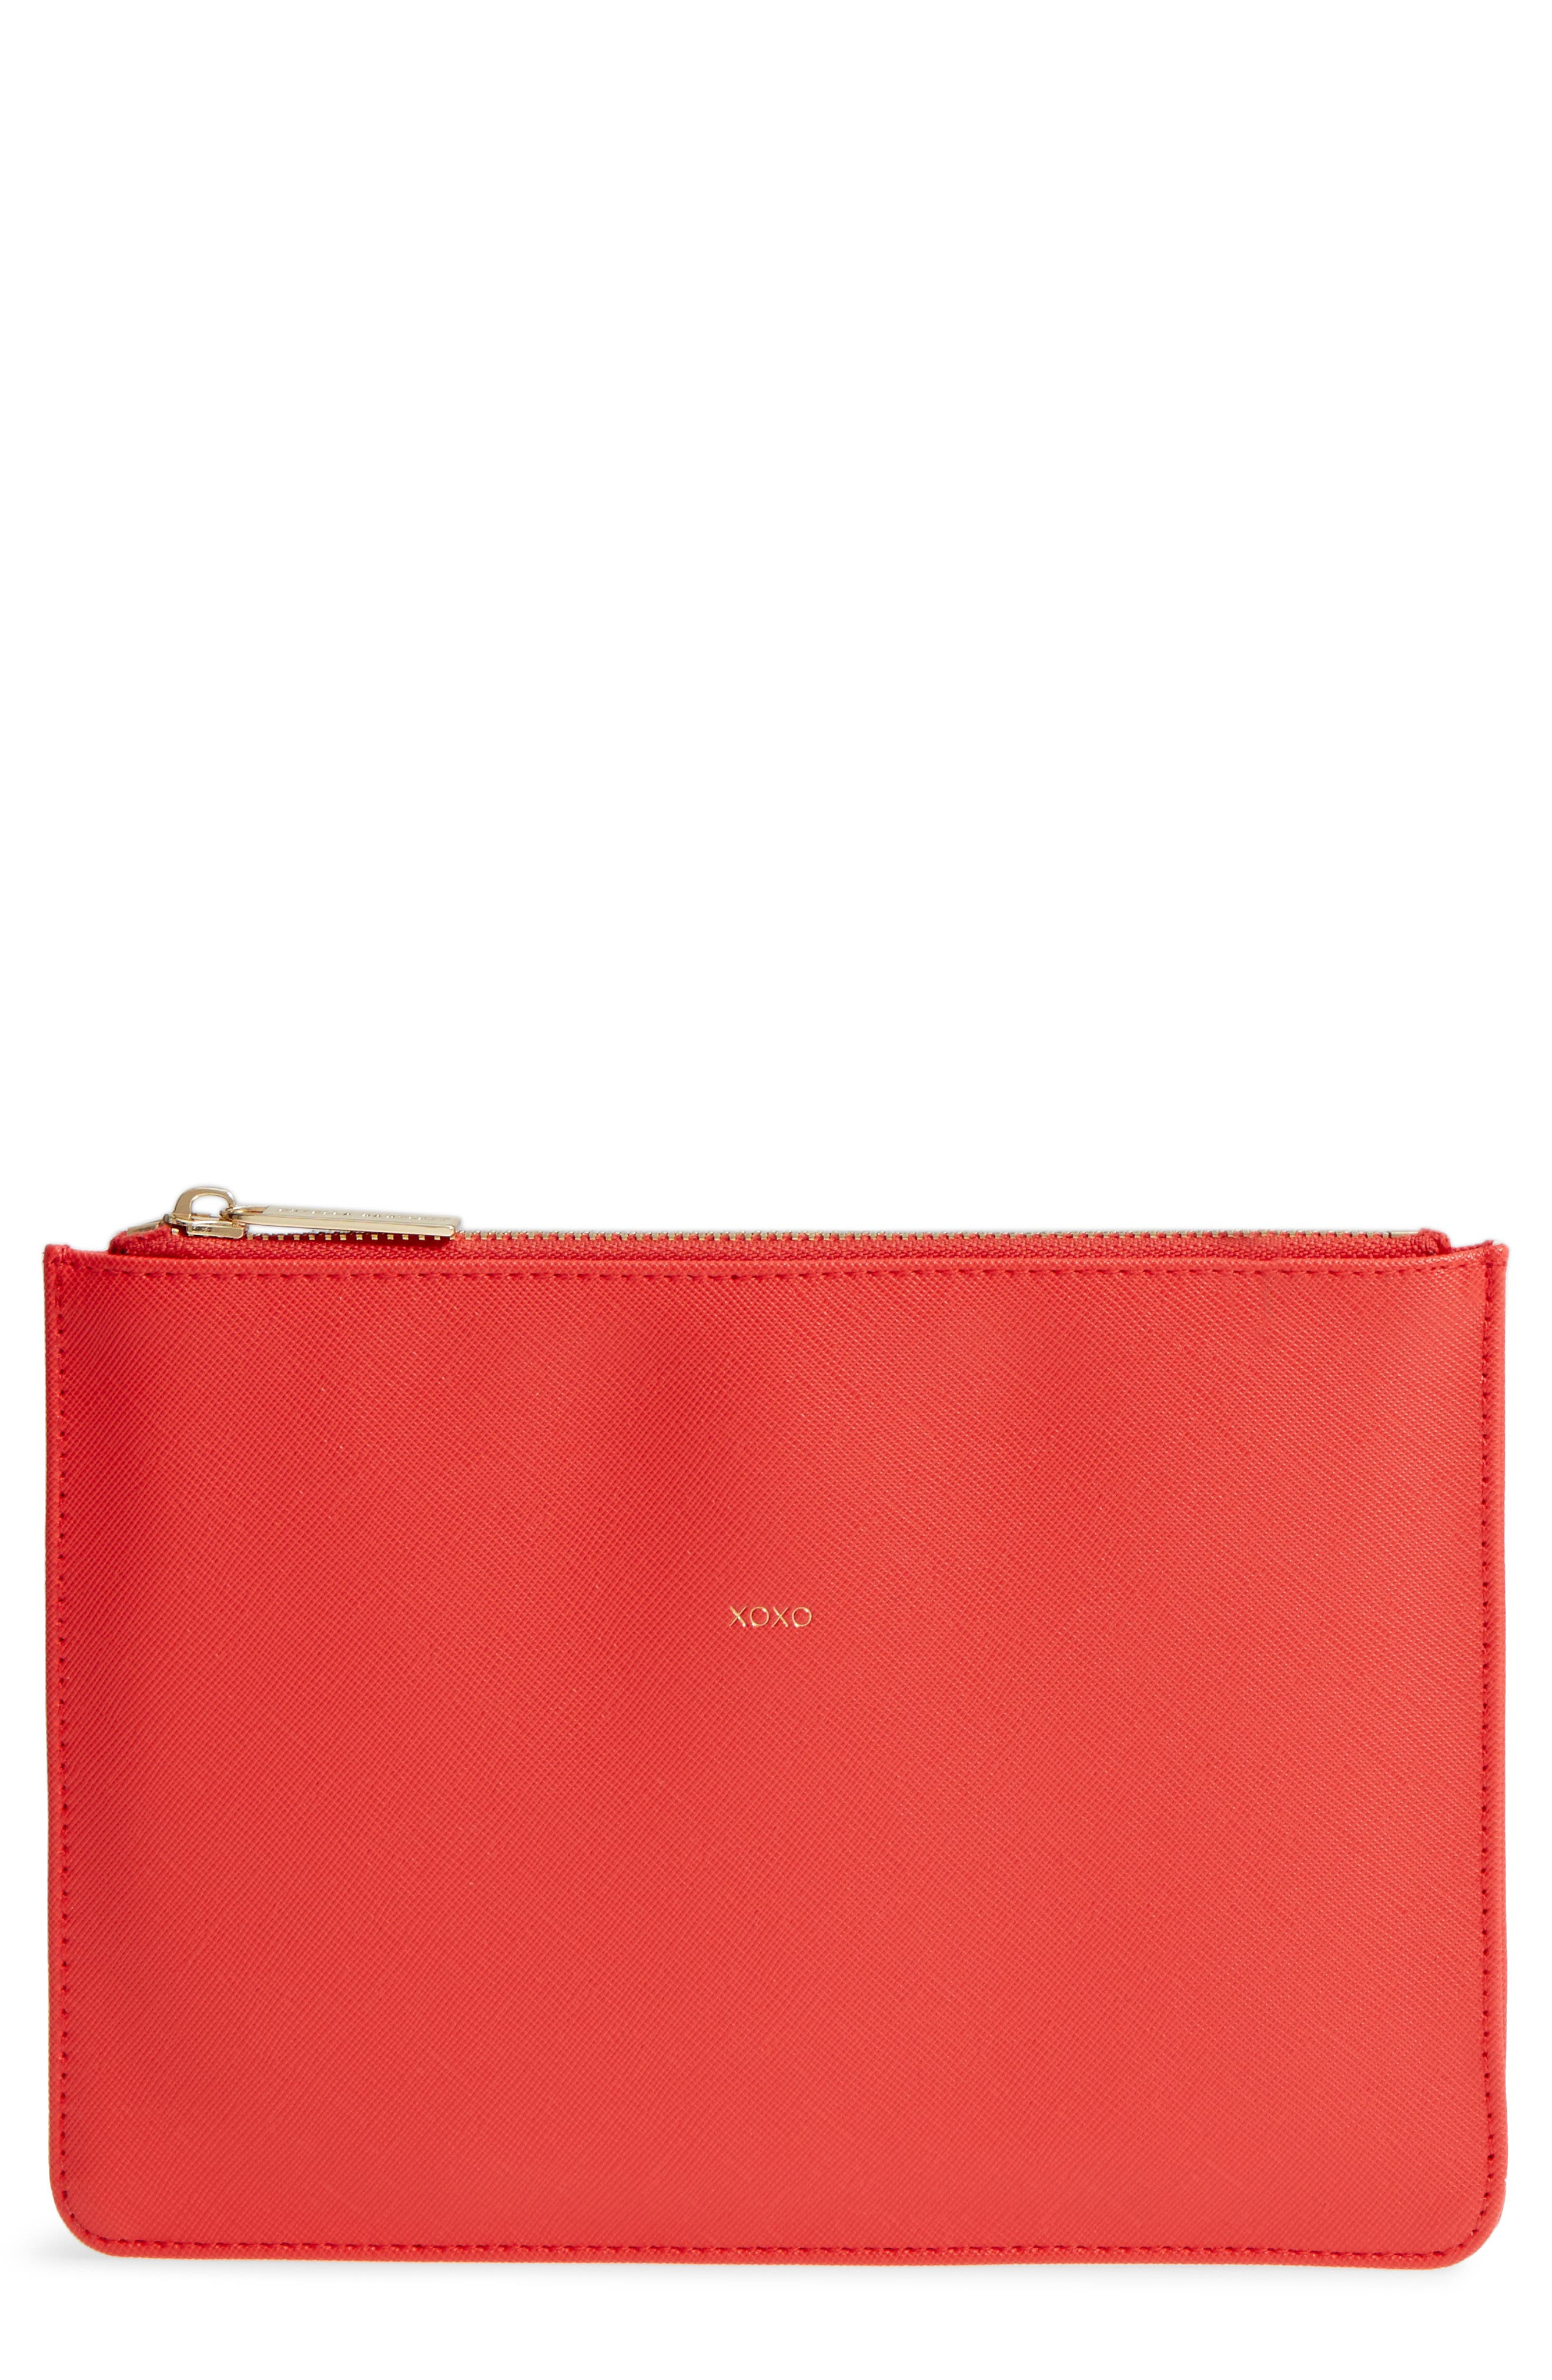 XOXO Medium Faux Leather Pouch,                         Main,                         color, Red